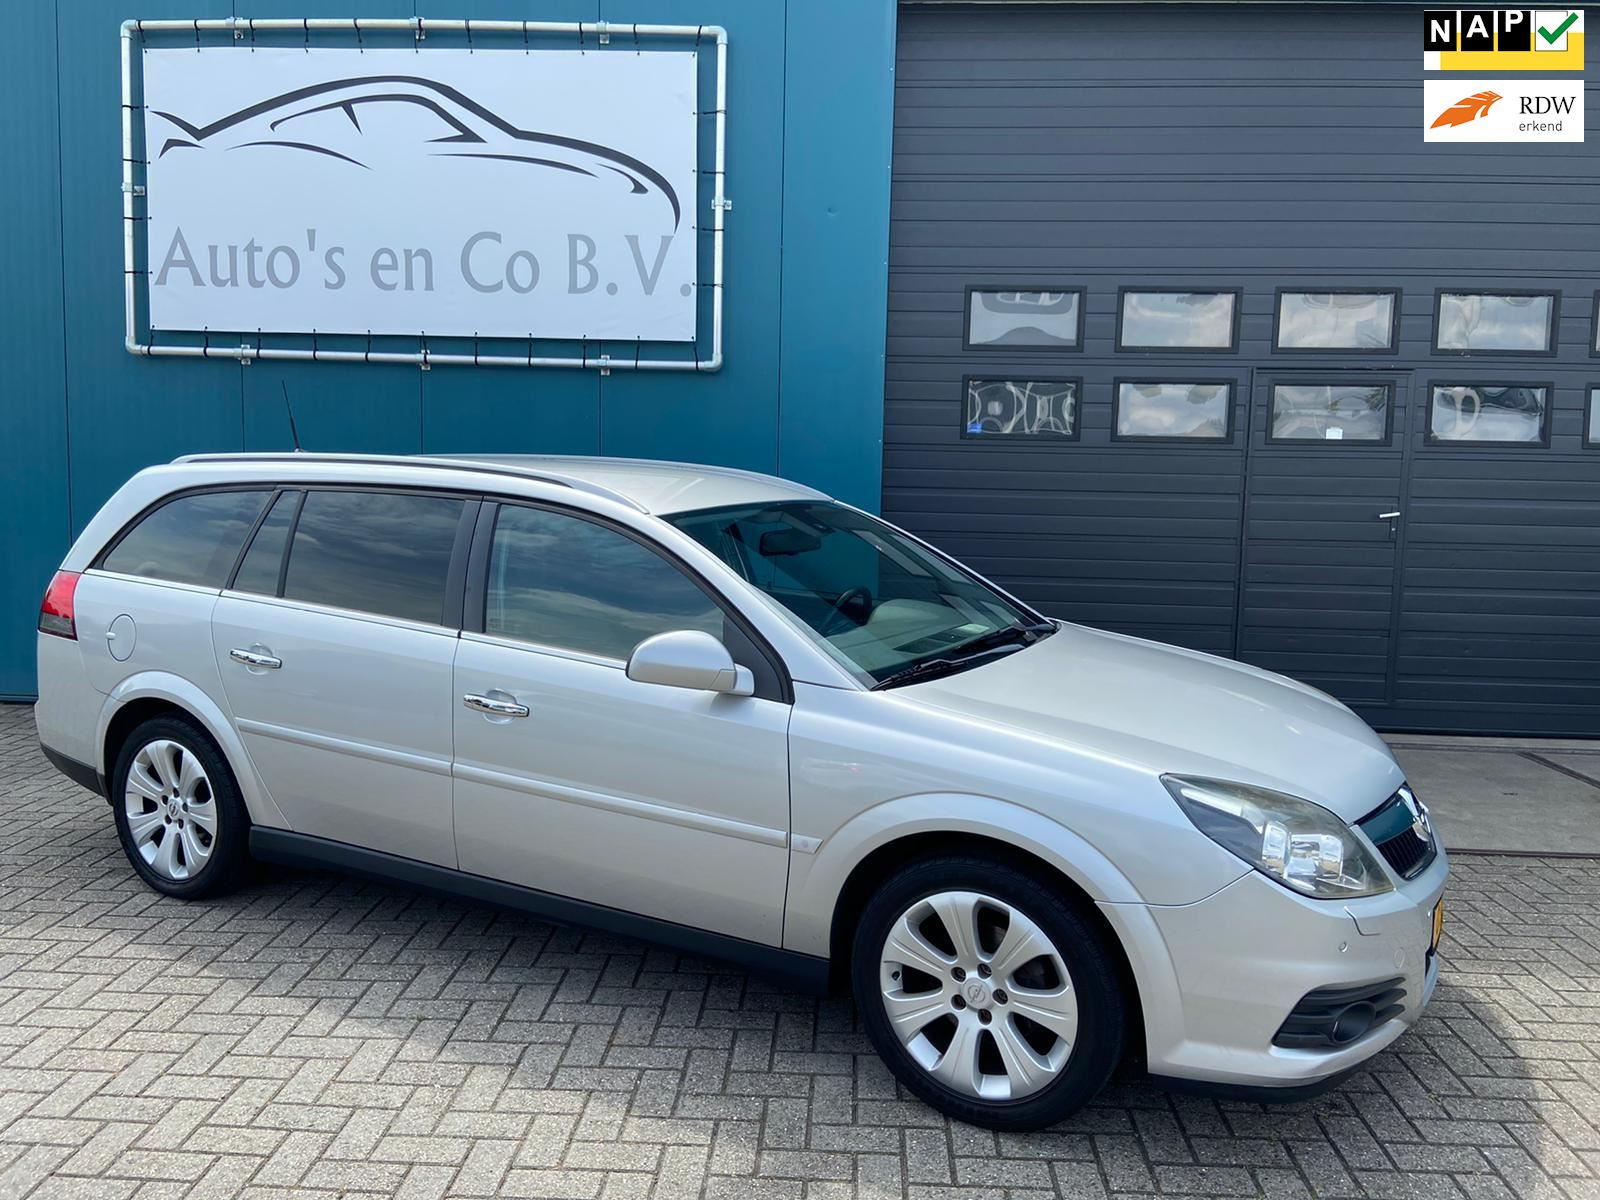 Opel Vectra Wagon occasion - Auto's en Co B.V.